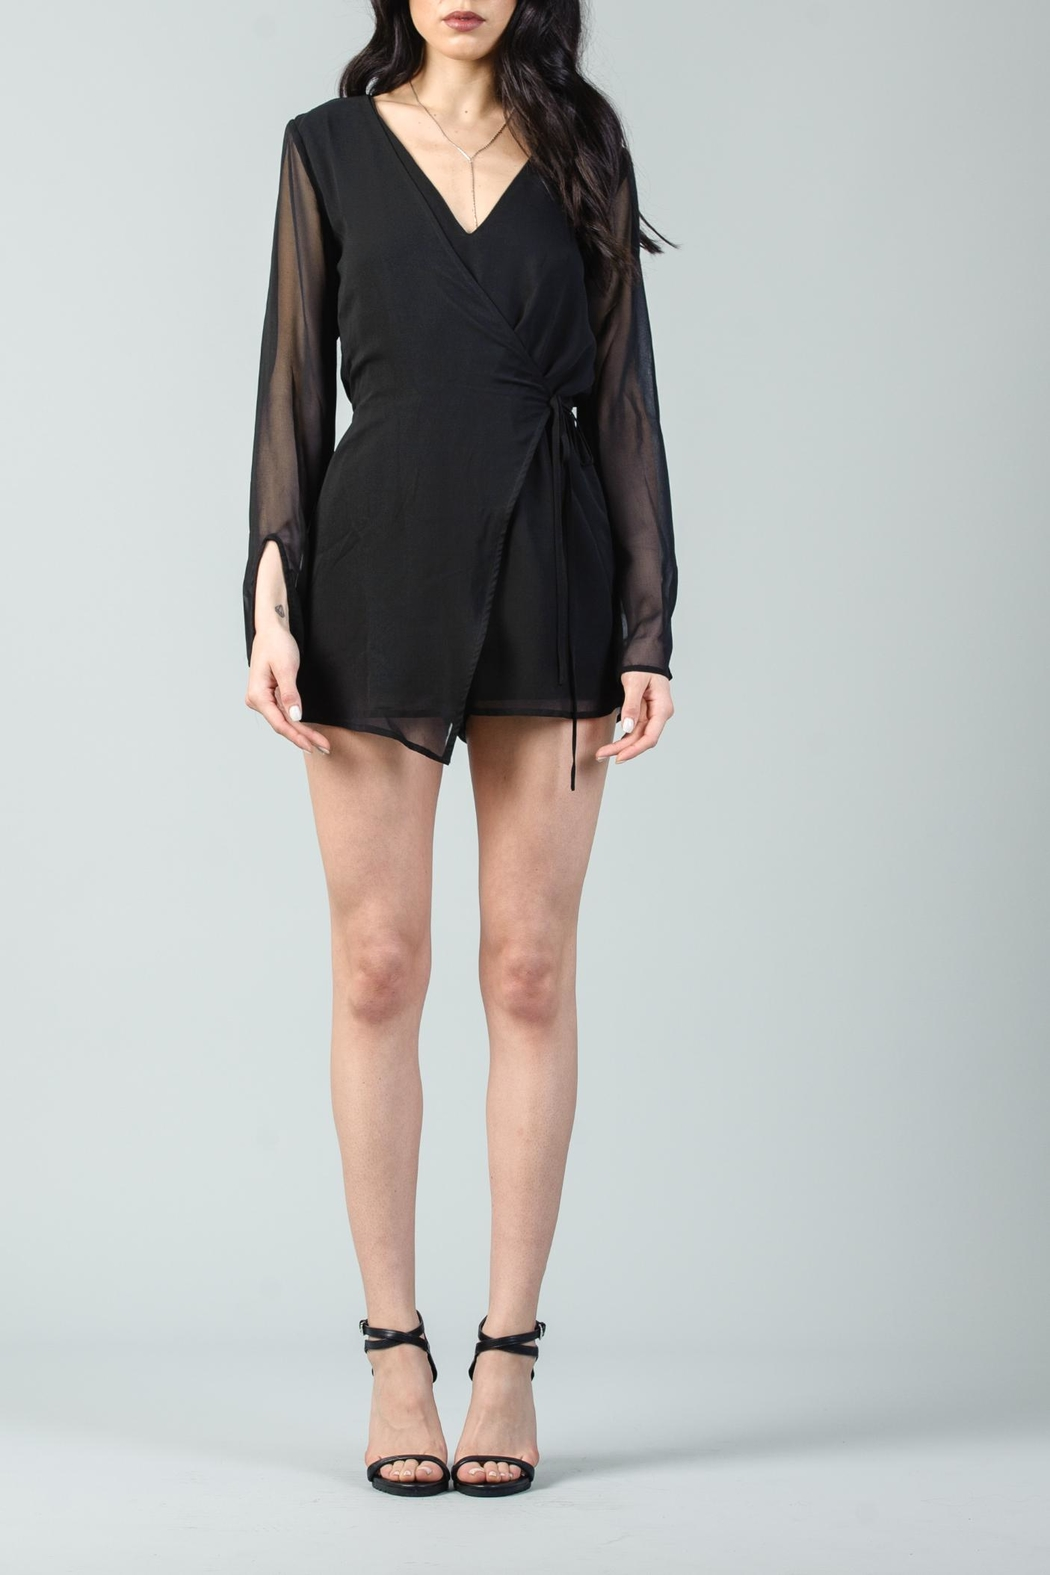 Lucca Front Wrap Romper - Main Image